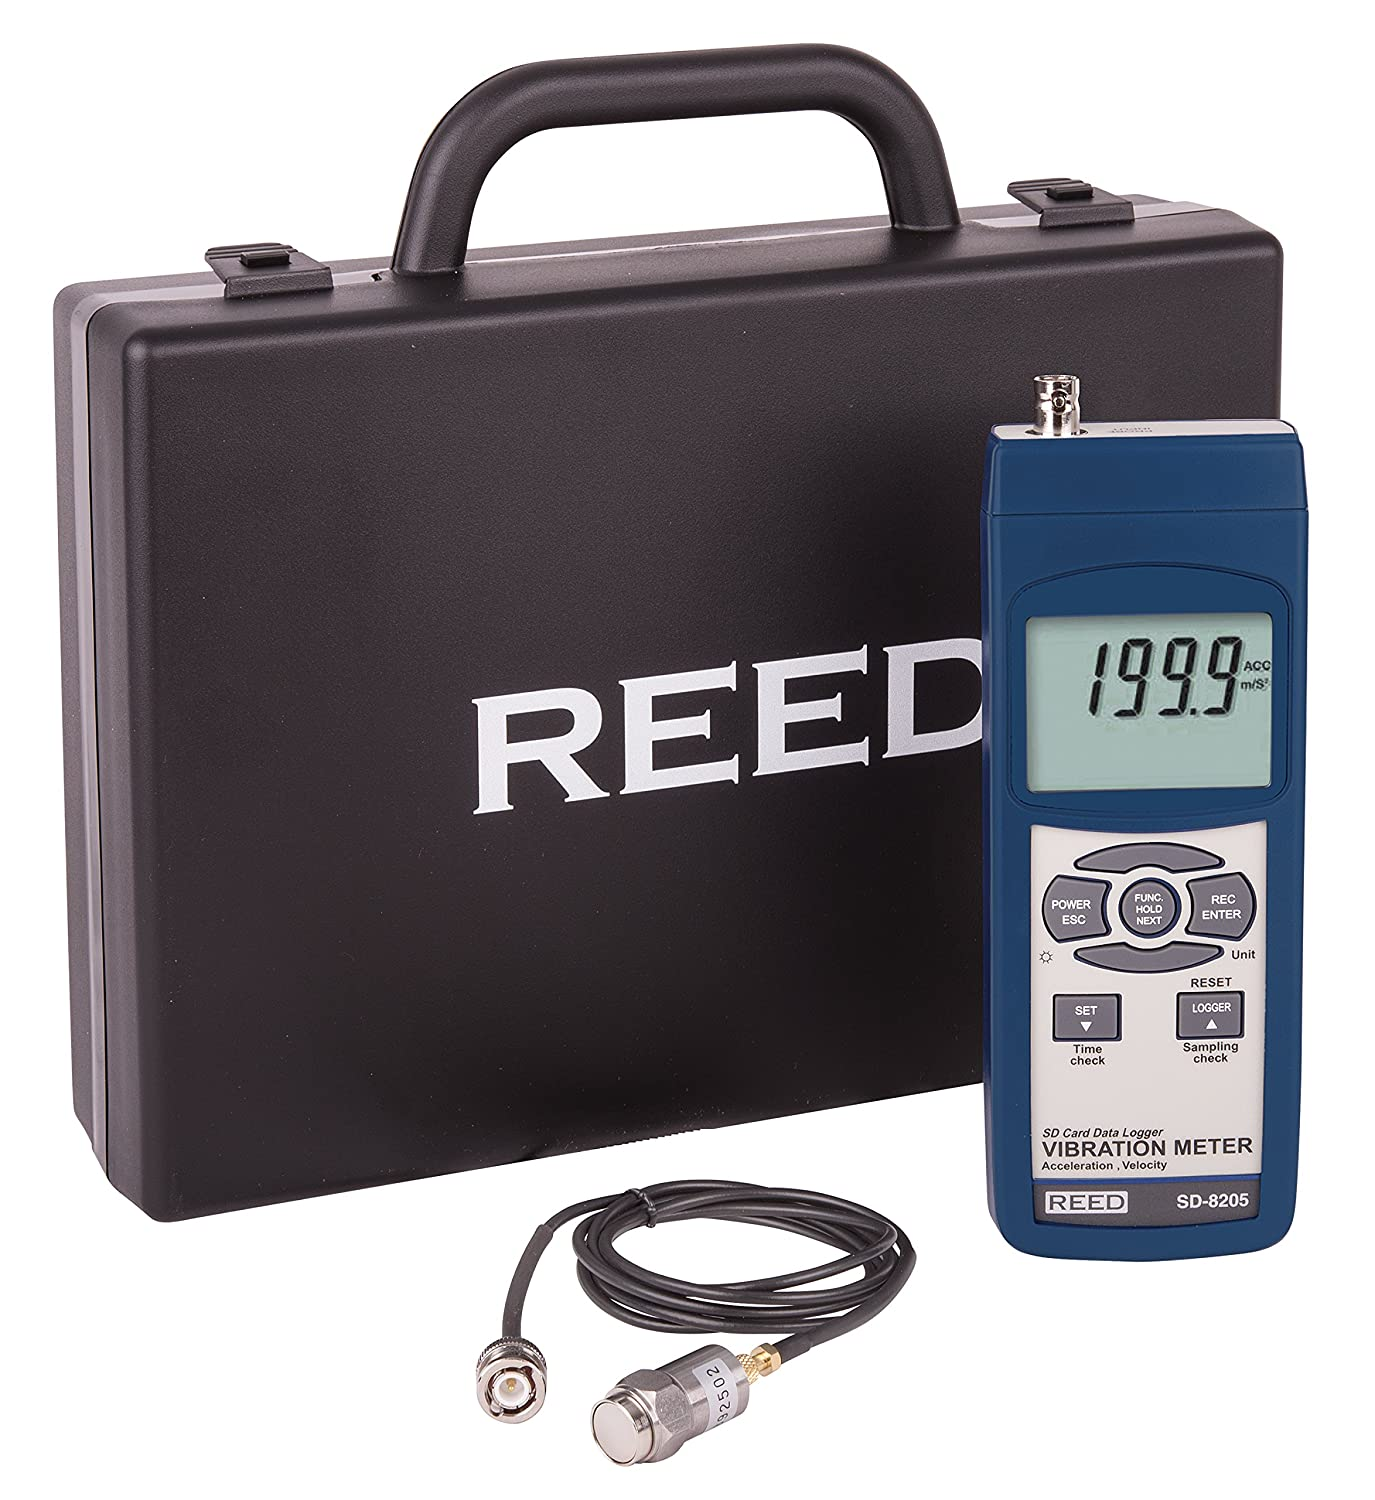 0.5 to 199.9 mm//s Velocity Range 0.1 mm//s Resolution Plus //-5 Percent Accuracy Reed SD-8205 Vibration Meter and Data Logger